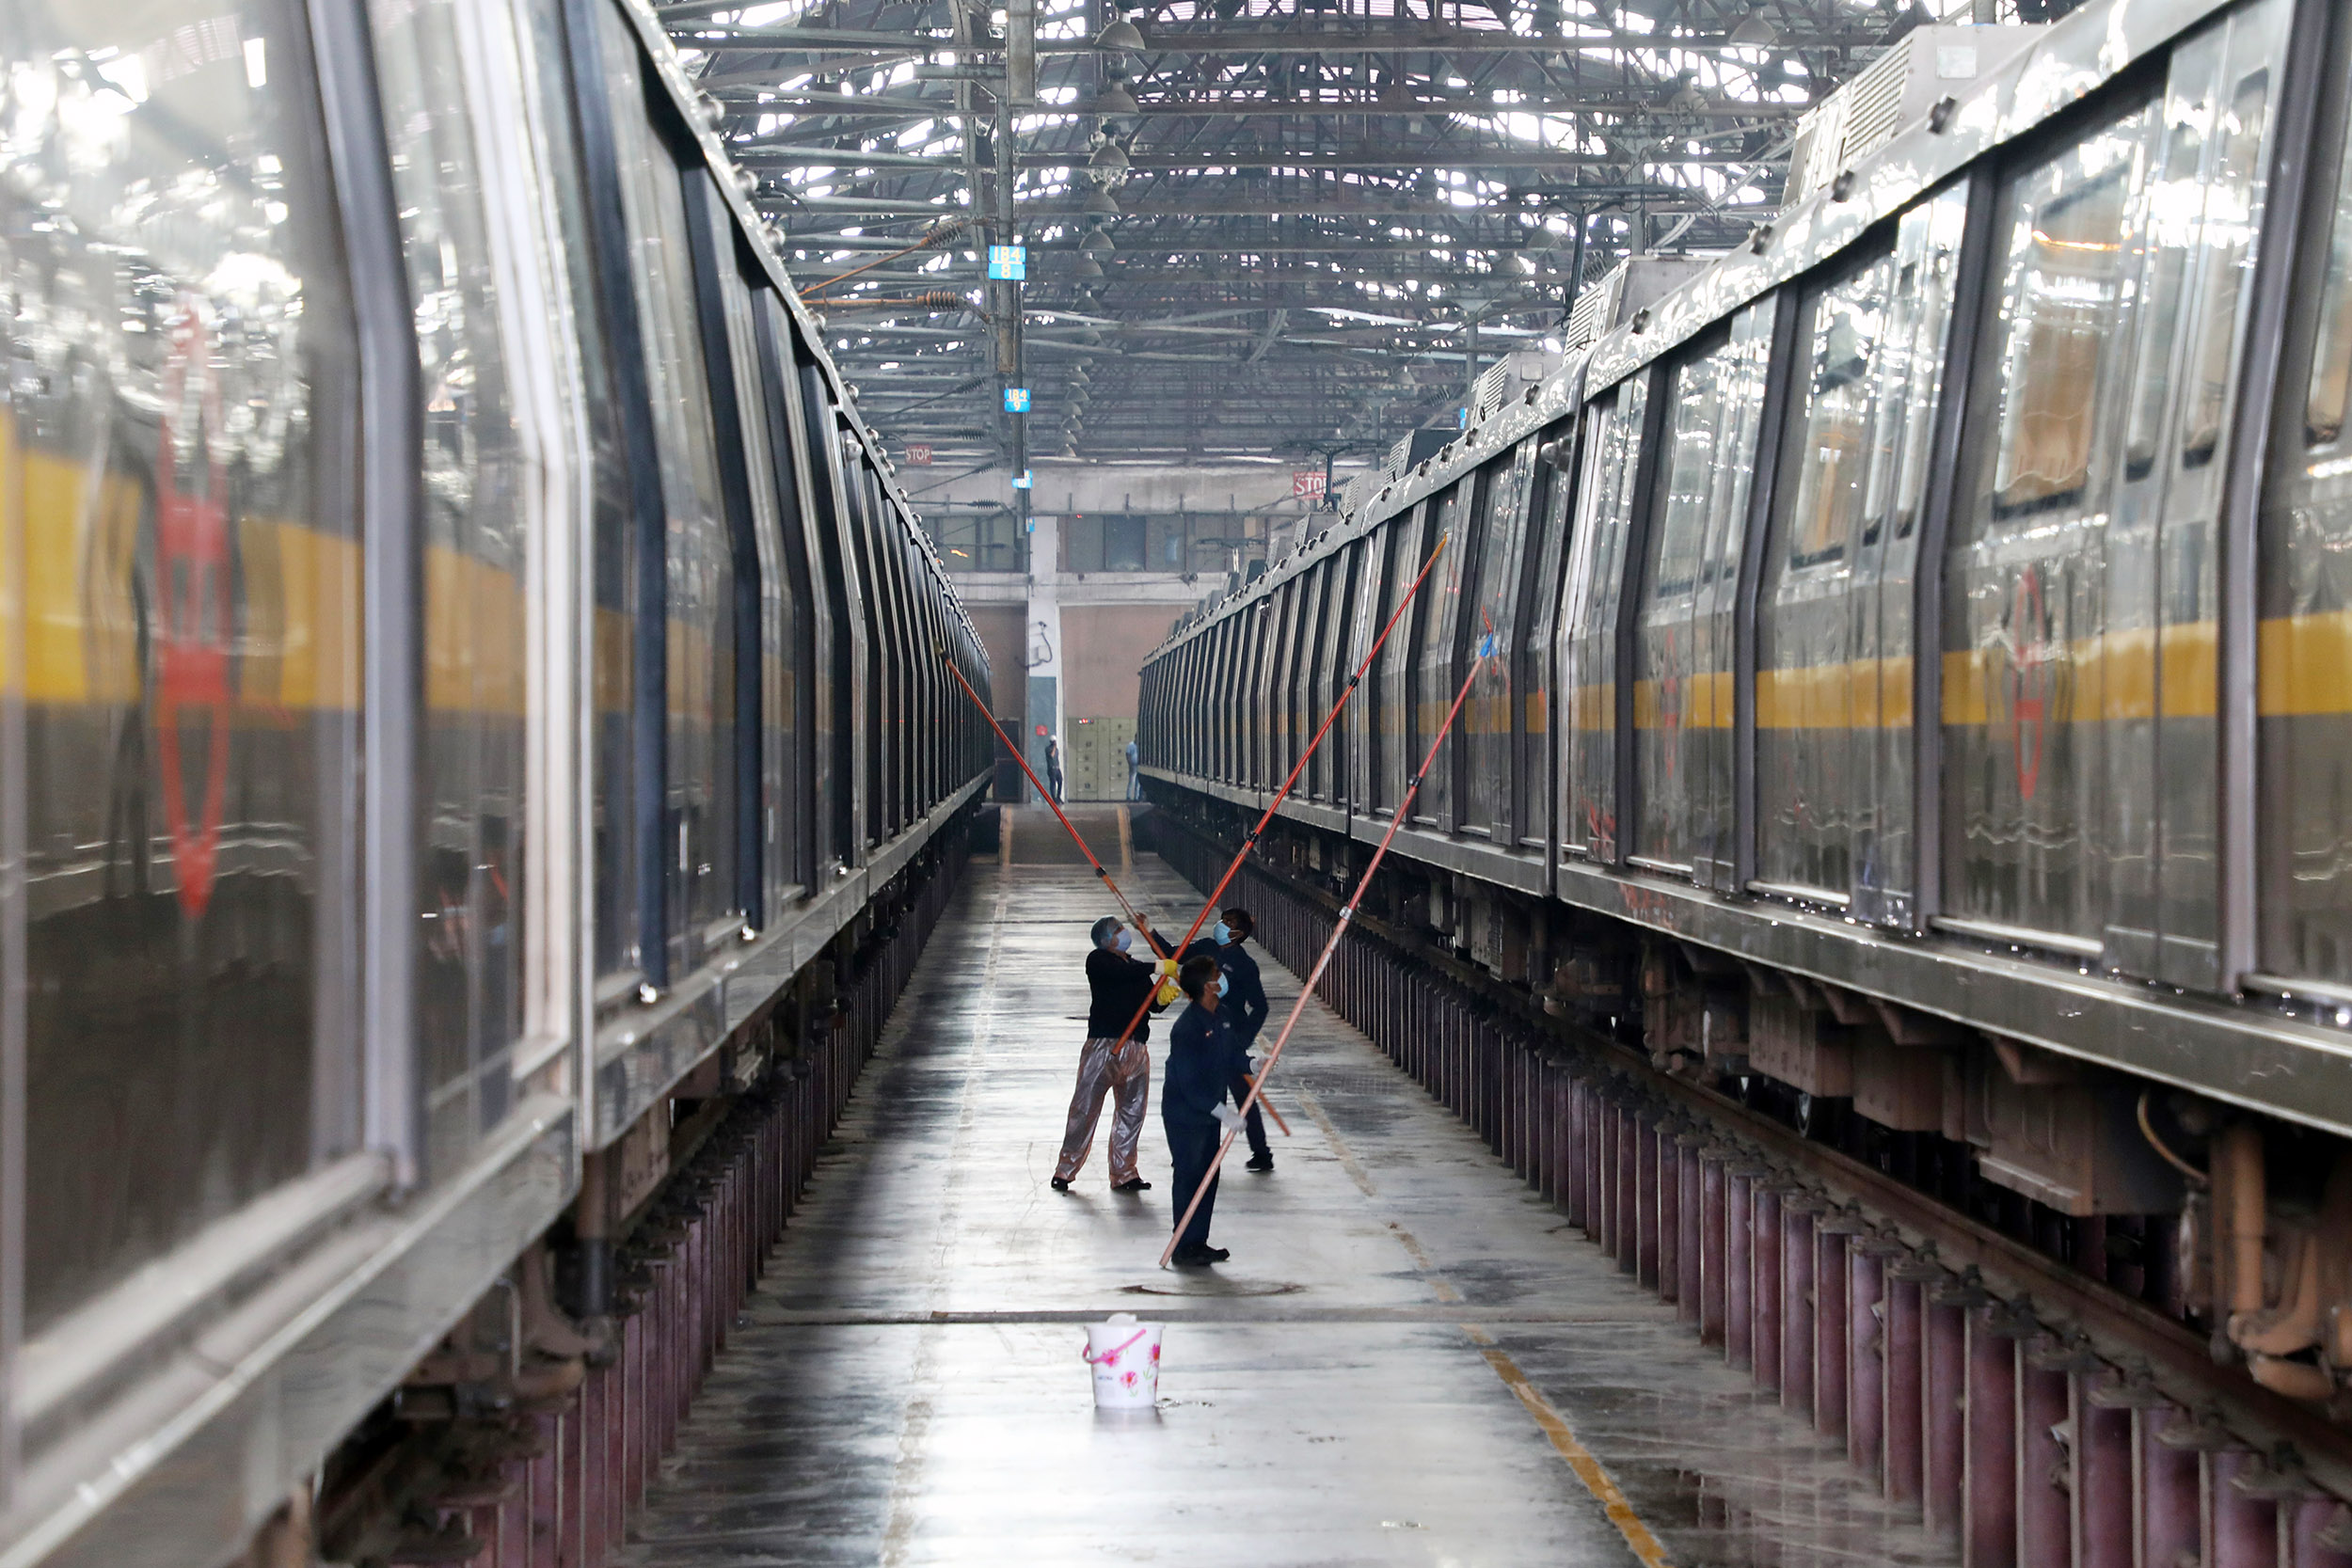 Workers disinfect the exterior a Delhi metro rail carriage.